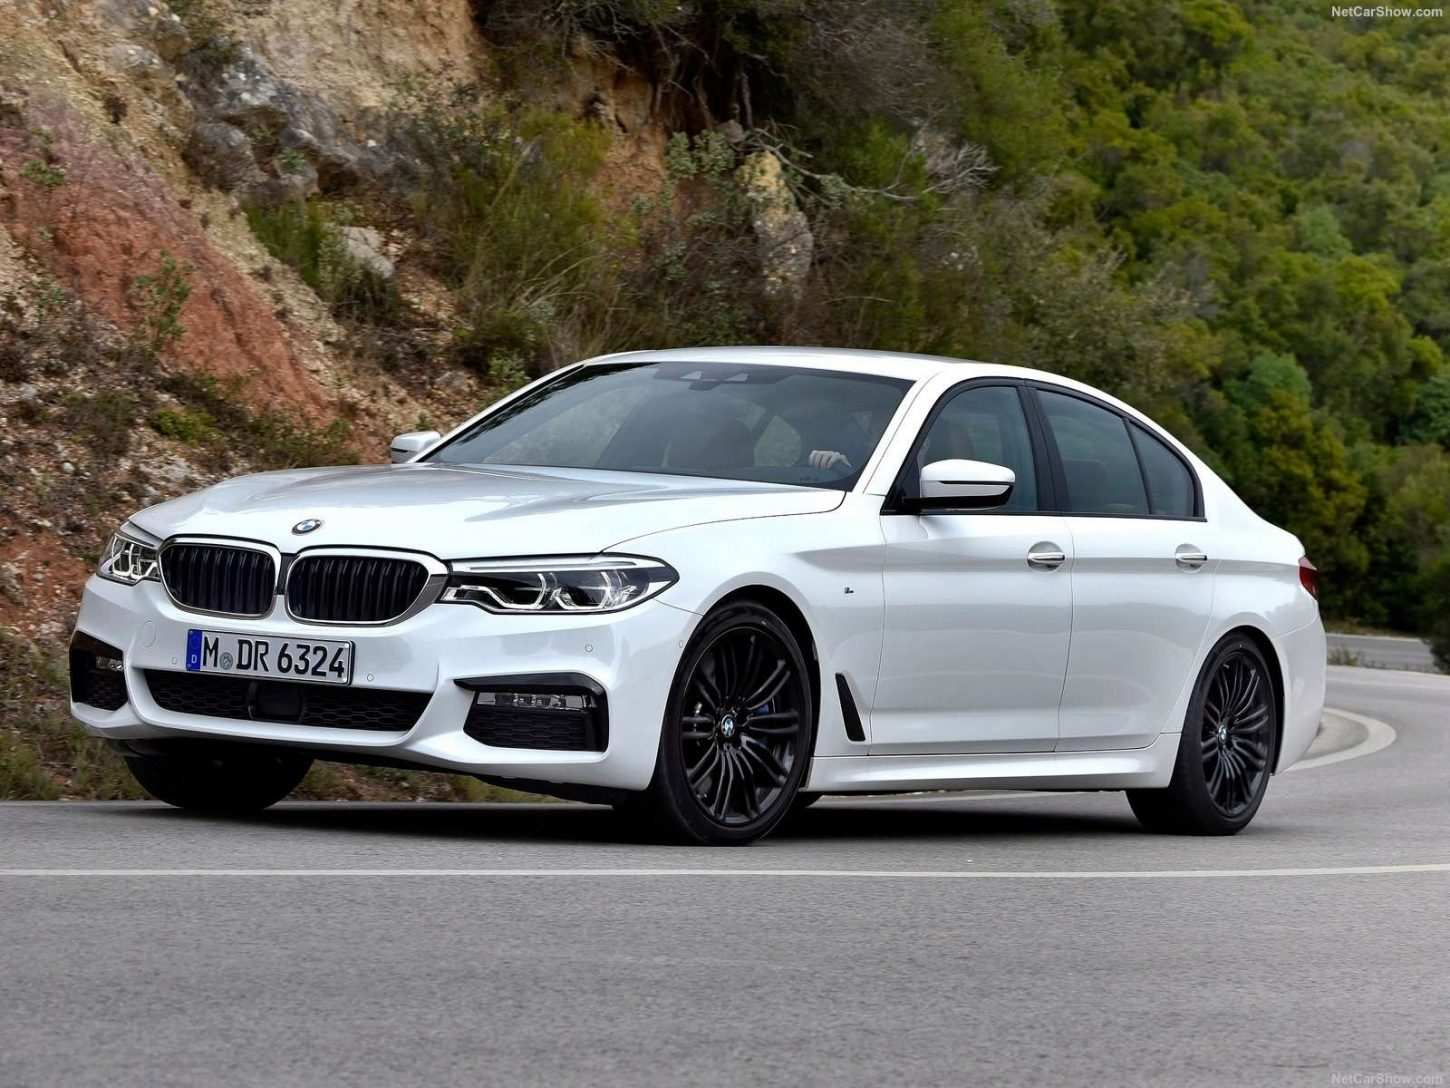 34 Best Review The Bmw 2019 5 Series Release Date Exterior with The Bmw 2019 5 Series Release Date